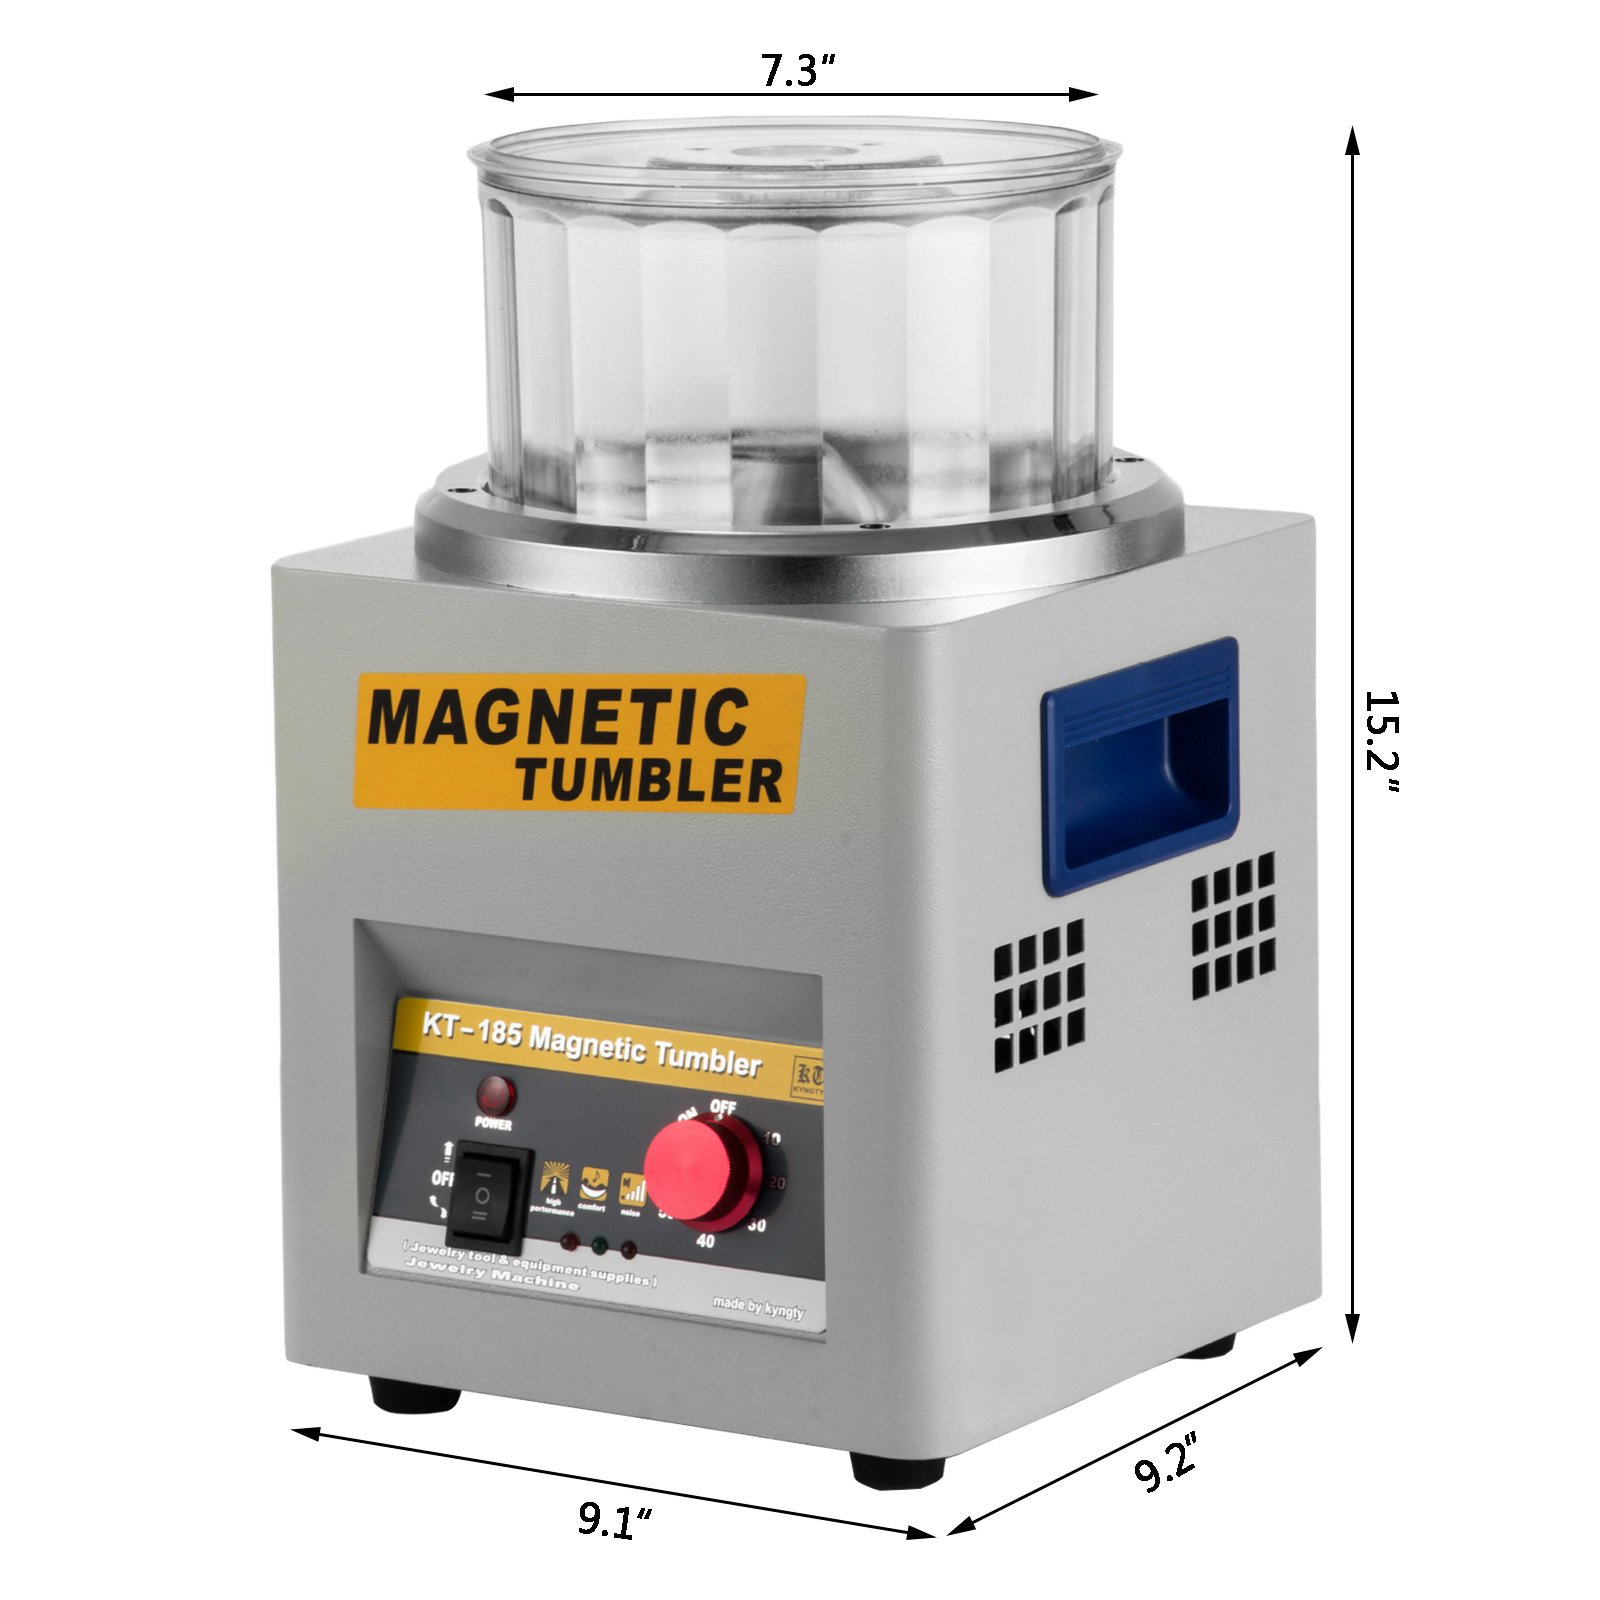 Happybuy Magnetic Tumbler 180mm Jewelry Polisher Tumbler 2000 RPM KT-185 Jewelry Polisher Finisher with Adjustable Speed for Jewelry (185mm) by Happybuy (Image #9)